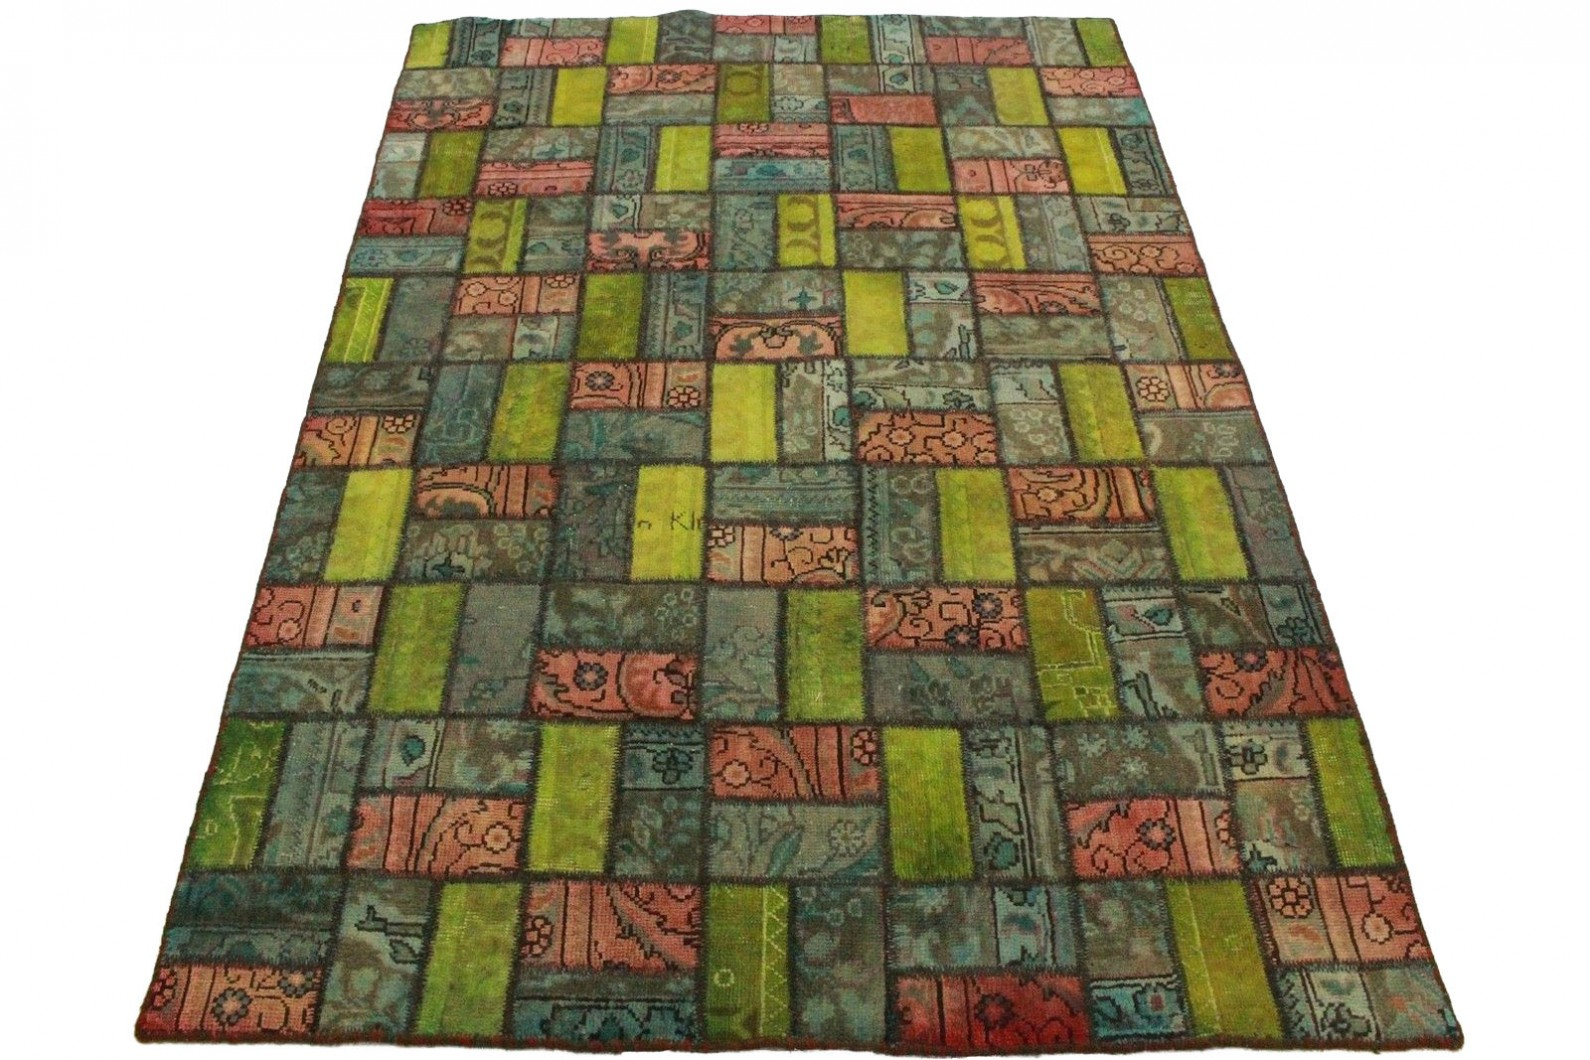 Teppich Offenbach Teppich Patchwork Affordable Kuhfell Teppich Mix Grau